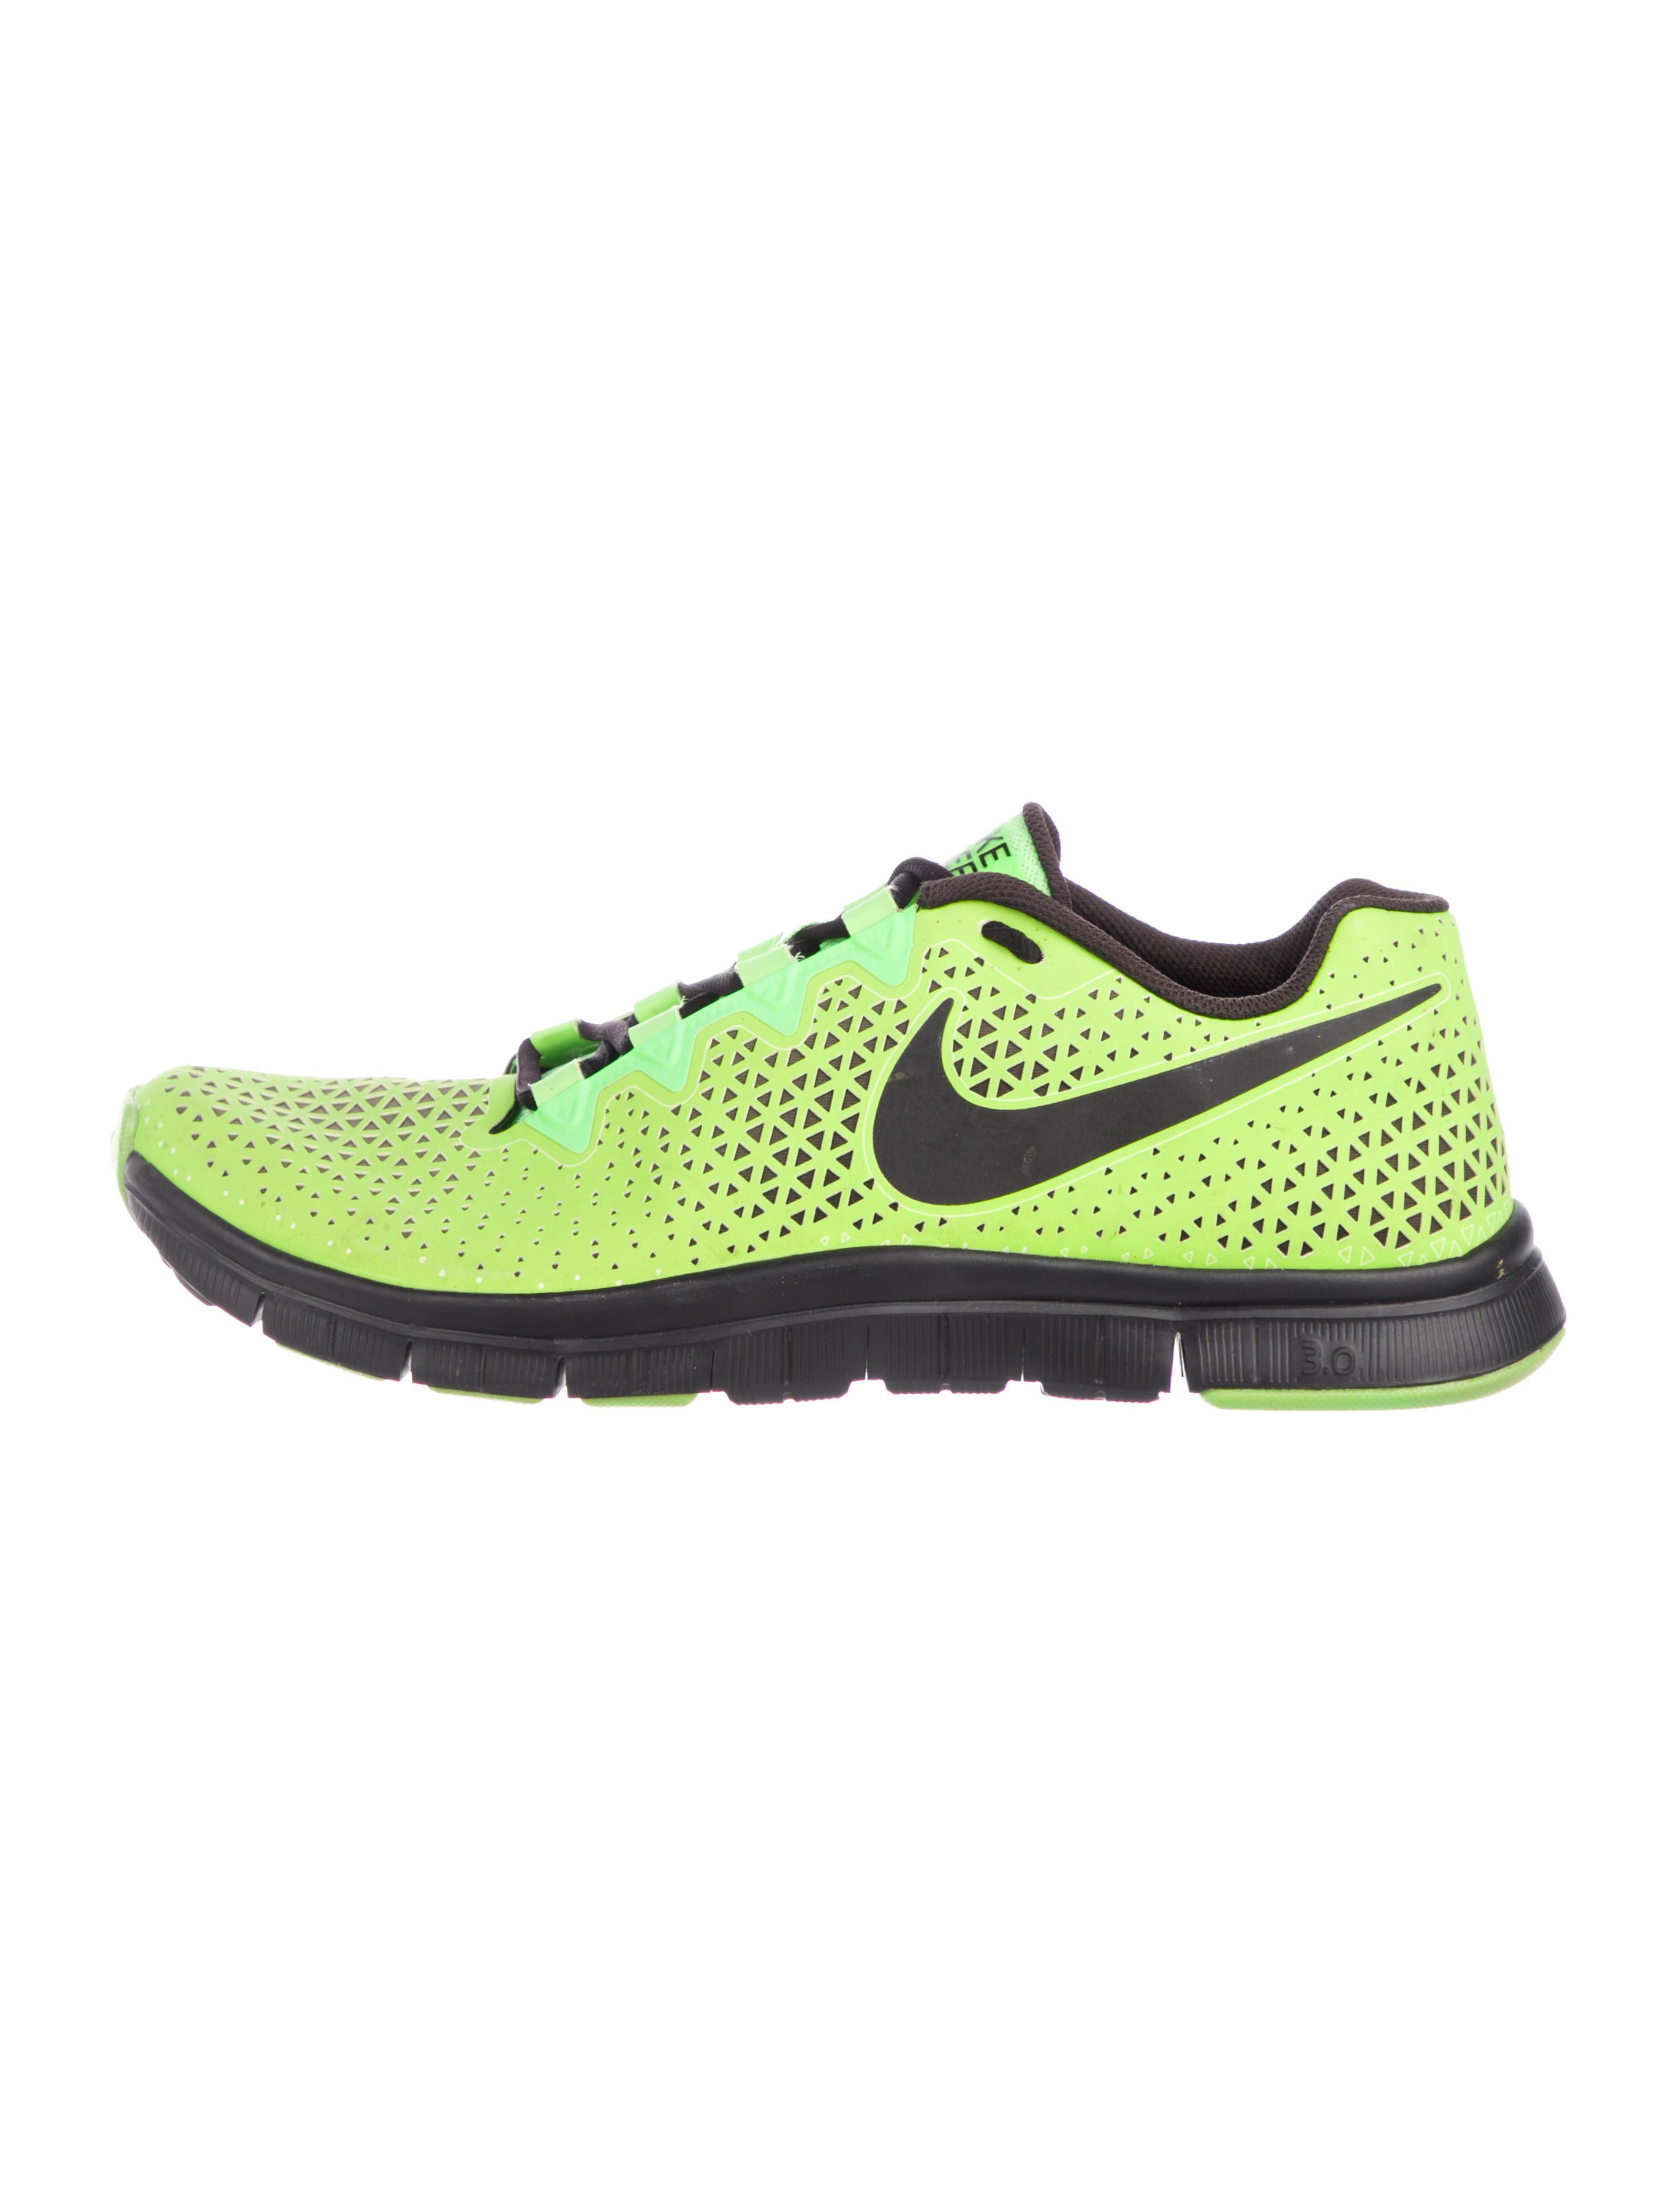 711bb56c44d74 Nike Free Haven 3.0 Sneakers - Shoes - WU226480